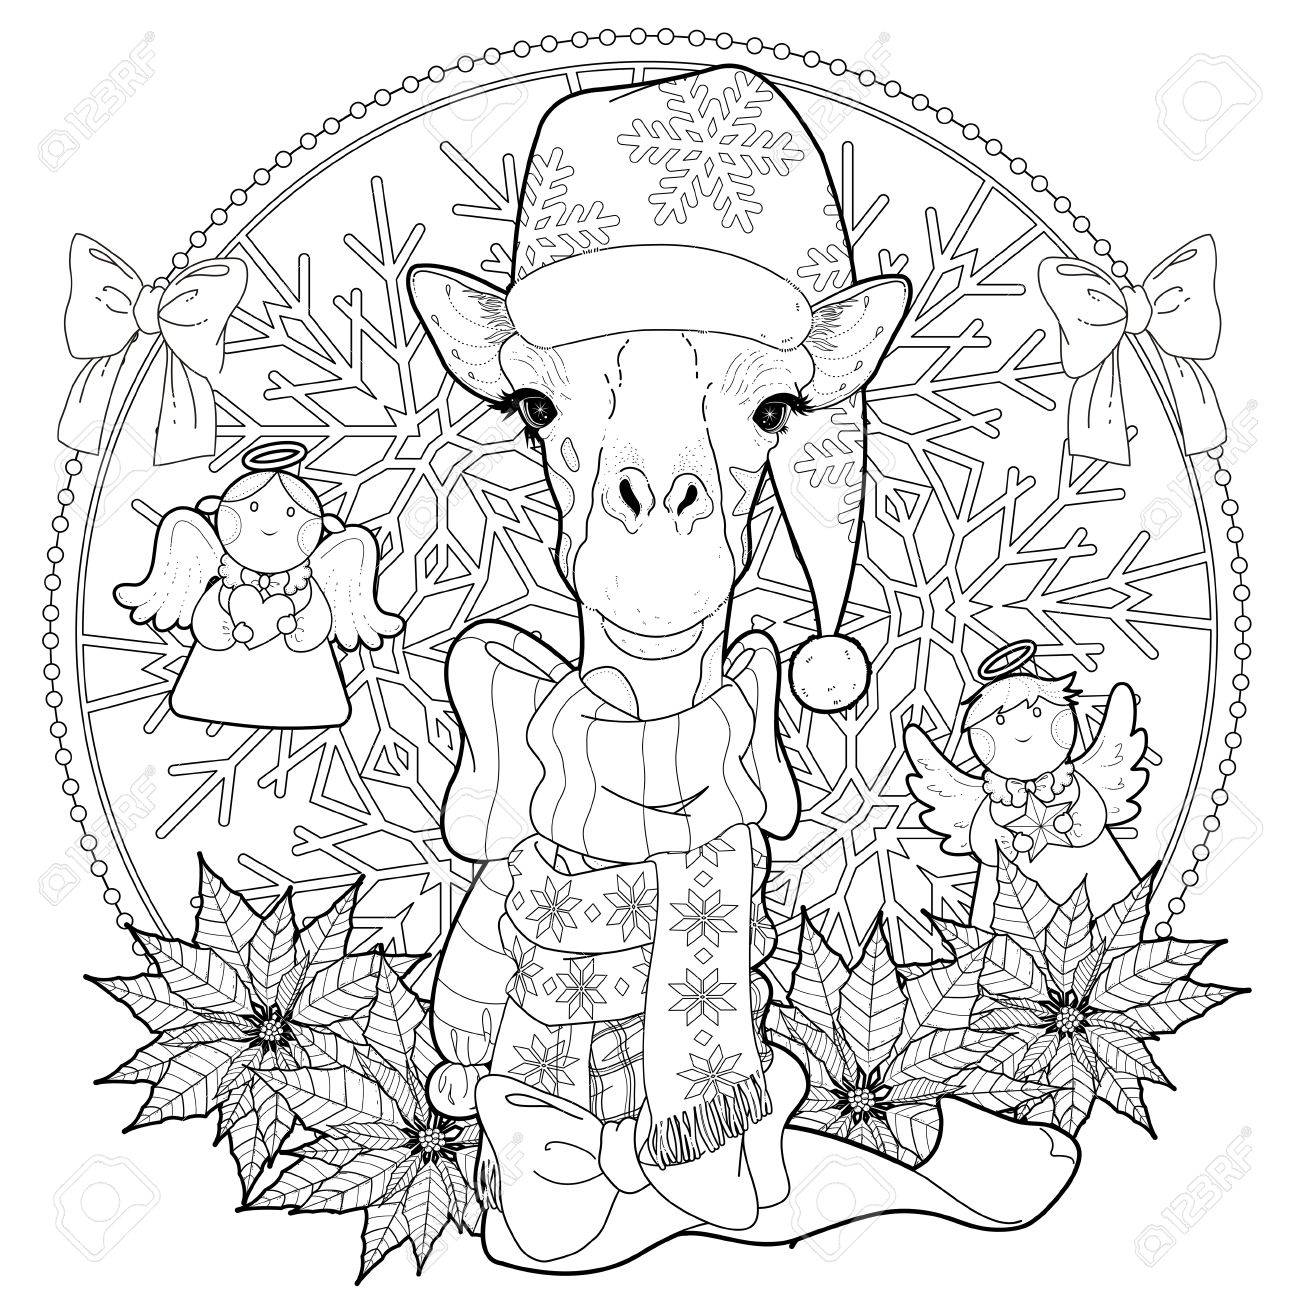 christmas giraffe coloring page with decorations in exquisite line stock vector 49729129